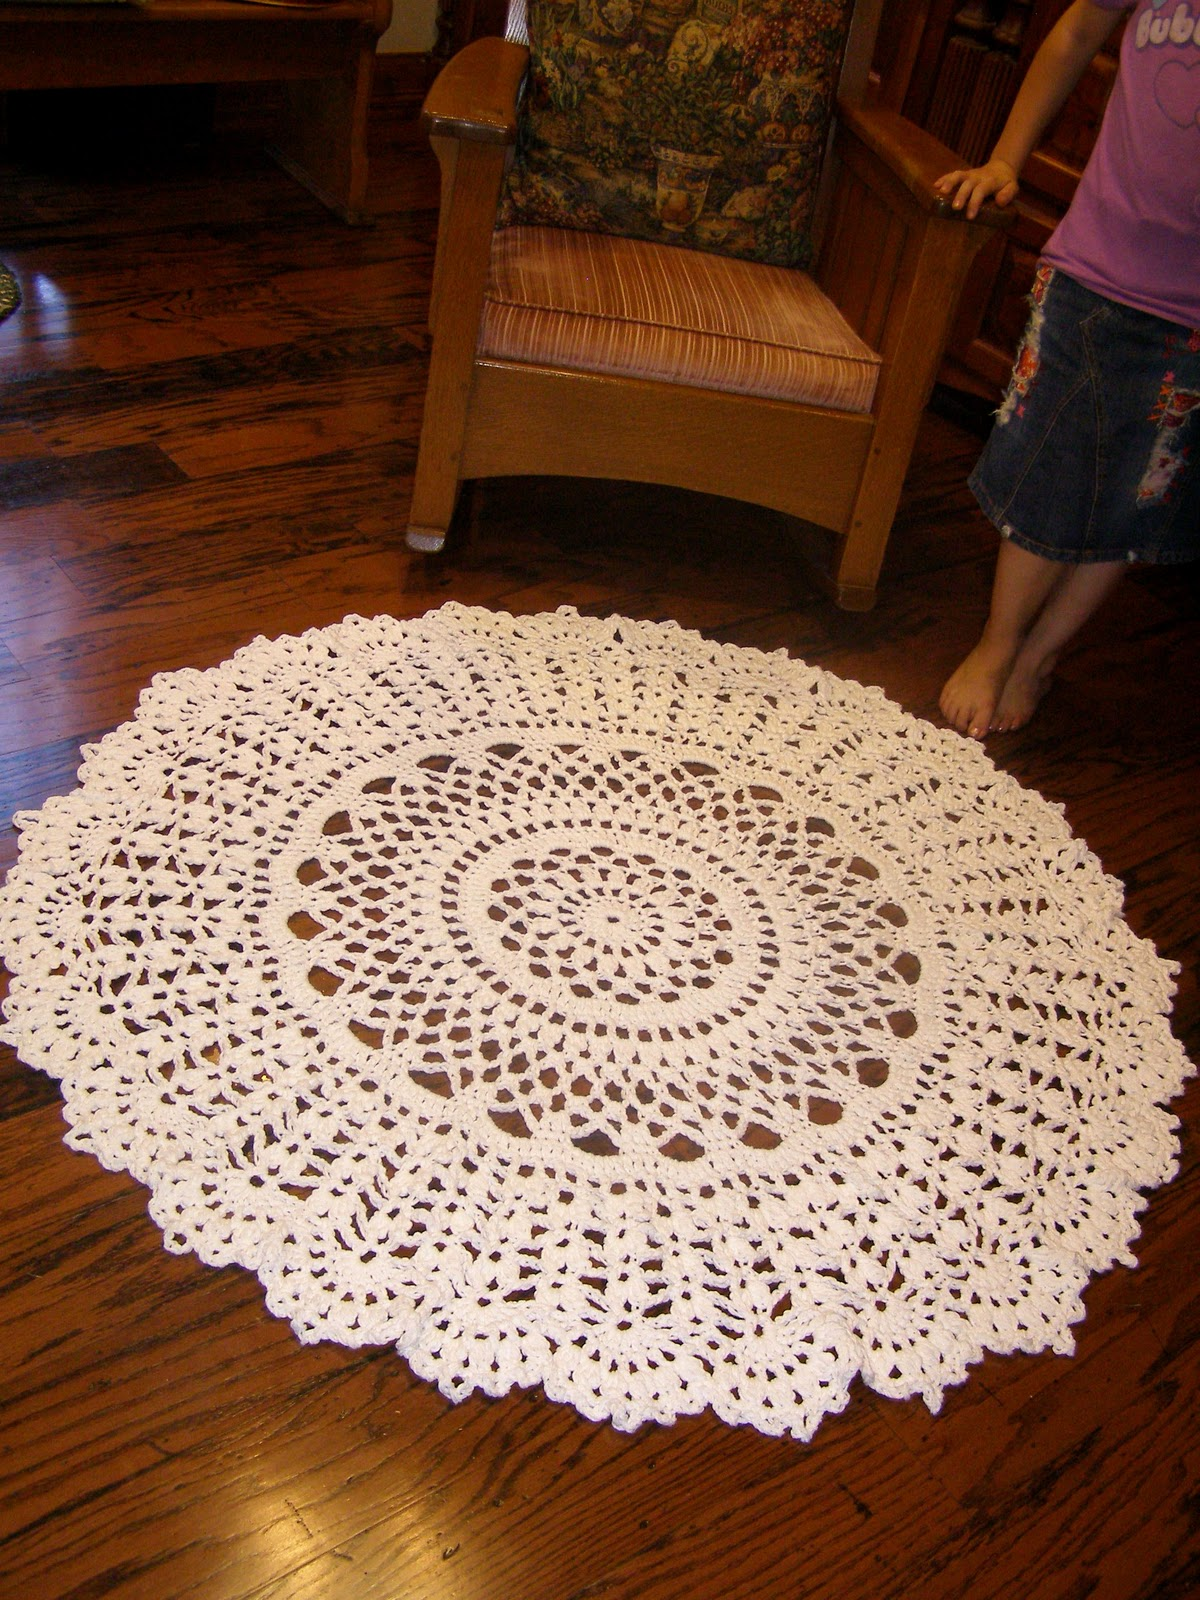 Lace And Whimsy Crocheted Rug Doily Coverlet Afghan